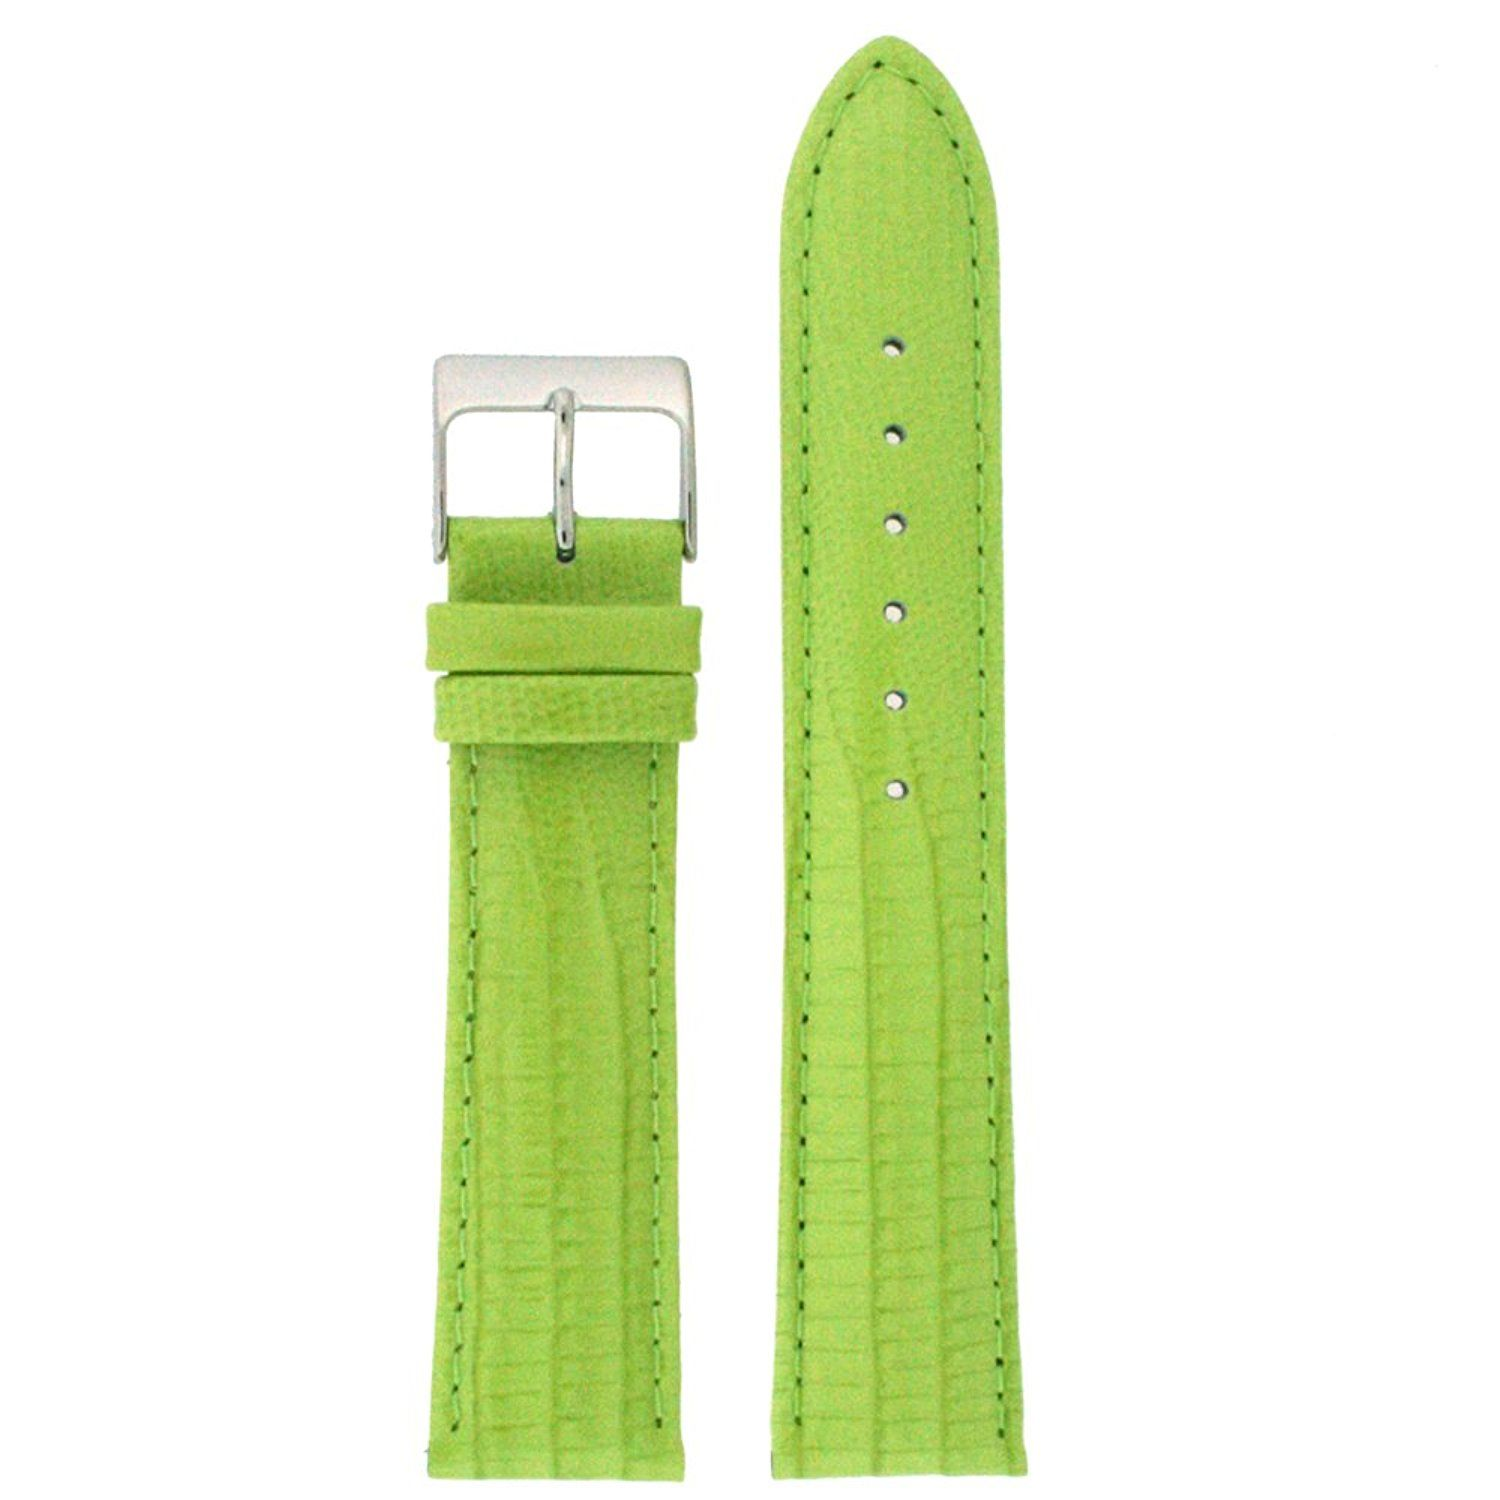 18mm Watch Band Patent Leather Lizard Grain Lime Green ** New and awesome product awaits you, Read it now  : Watch Bands